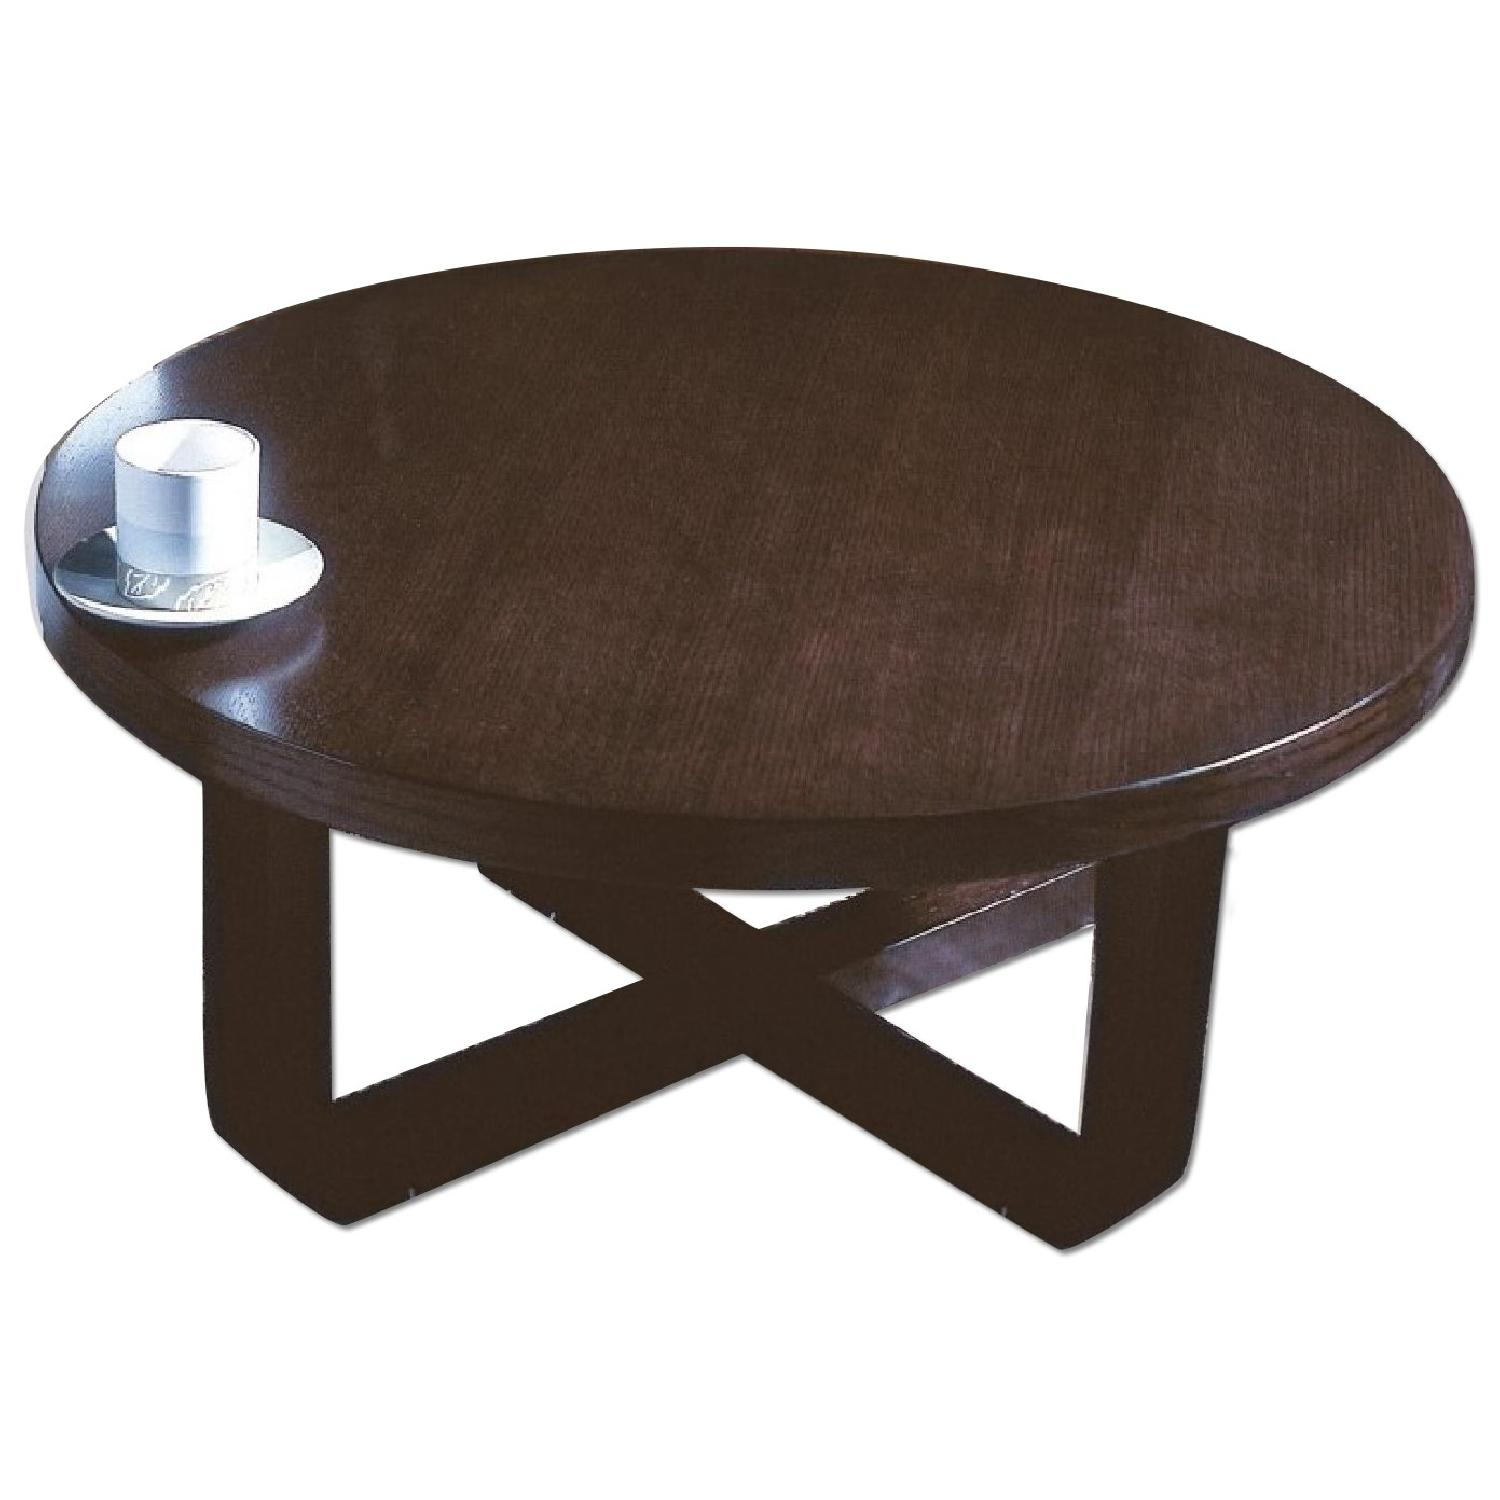 Cb2 Mid Century Coffee Table: Mid Century Style Round Coffee Table In Wenge Finish